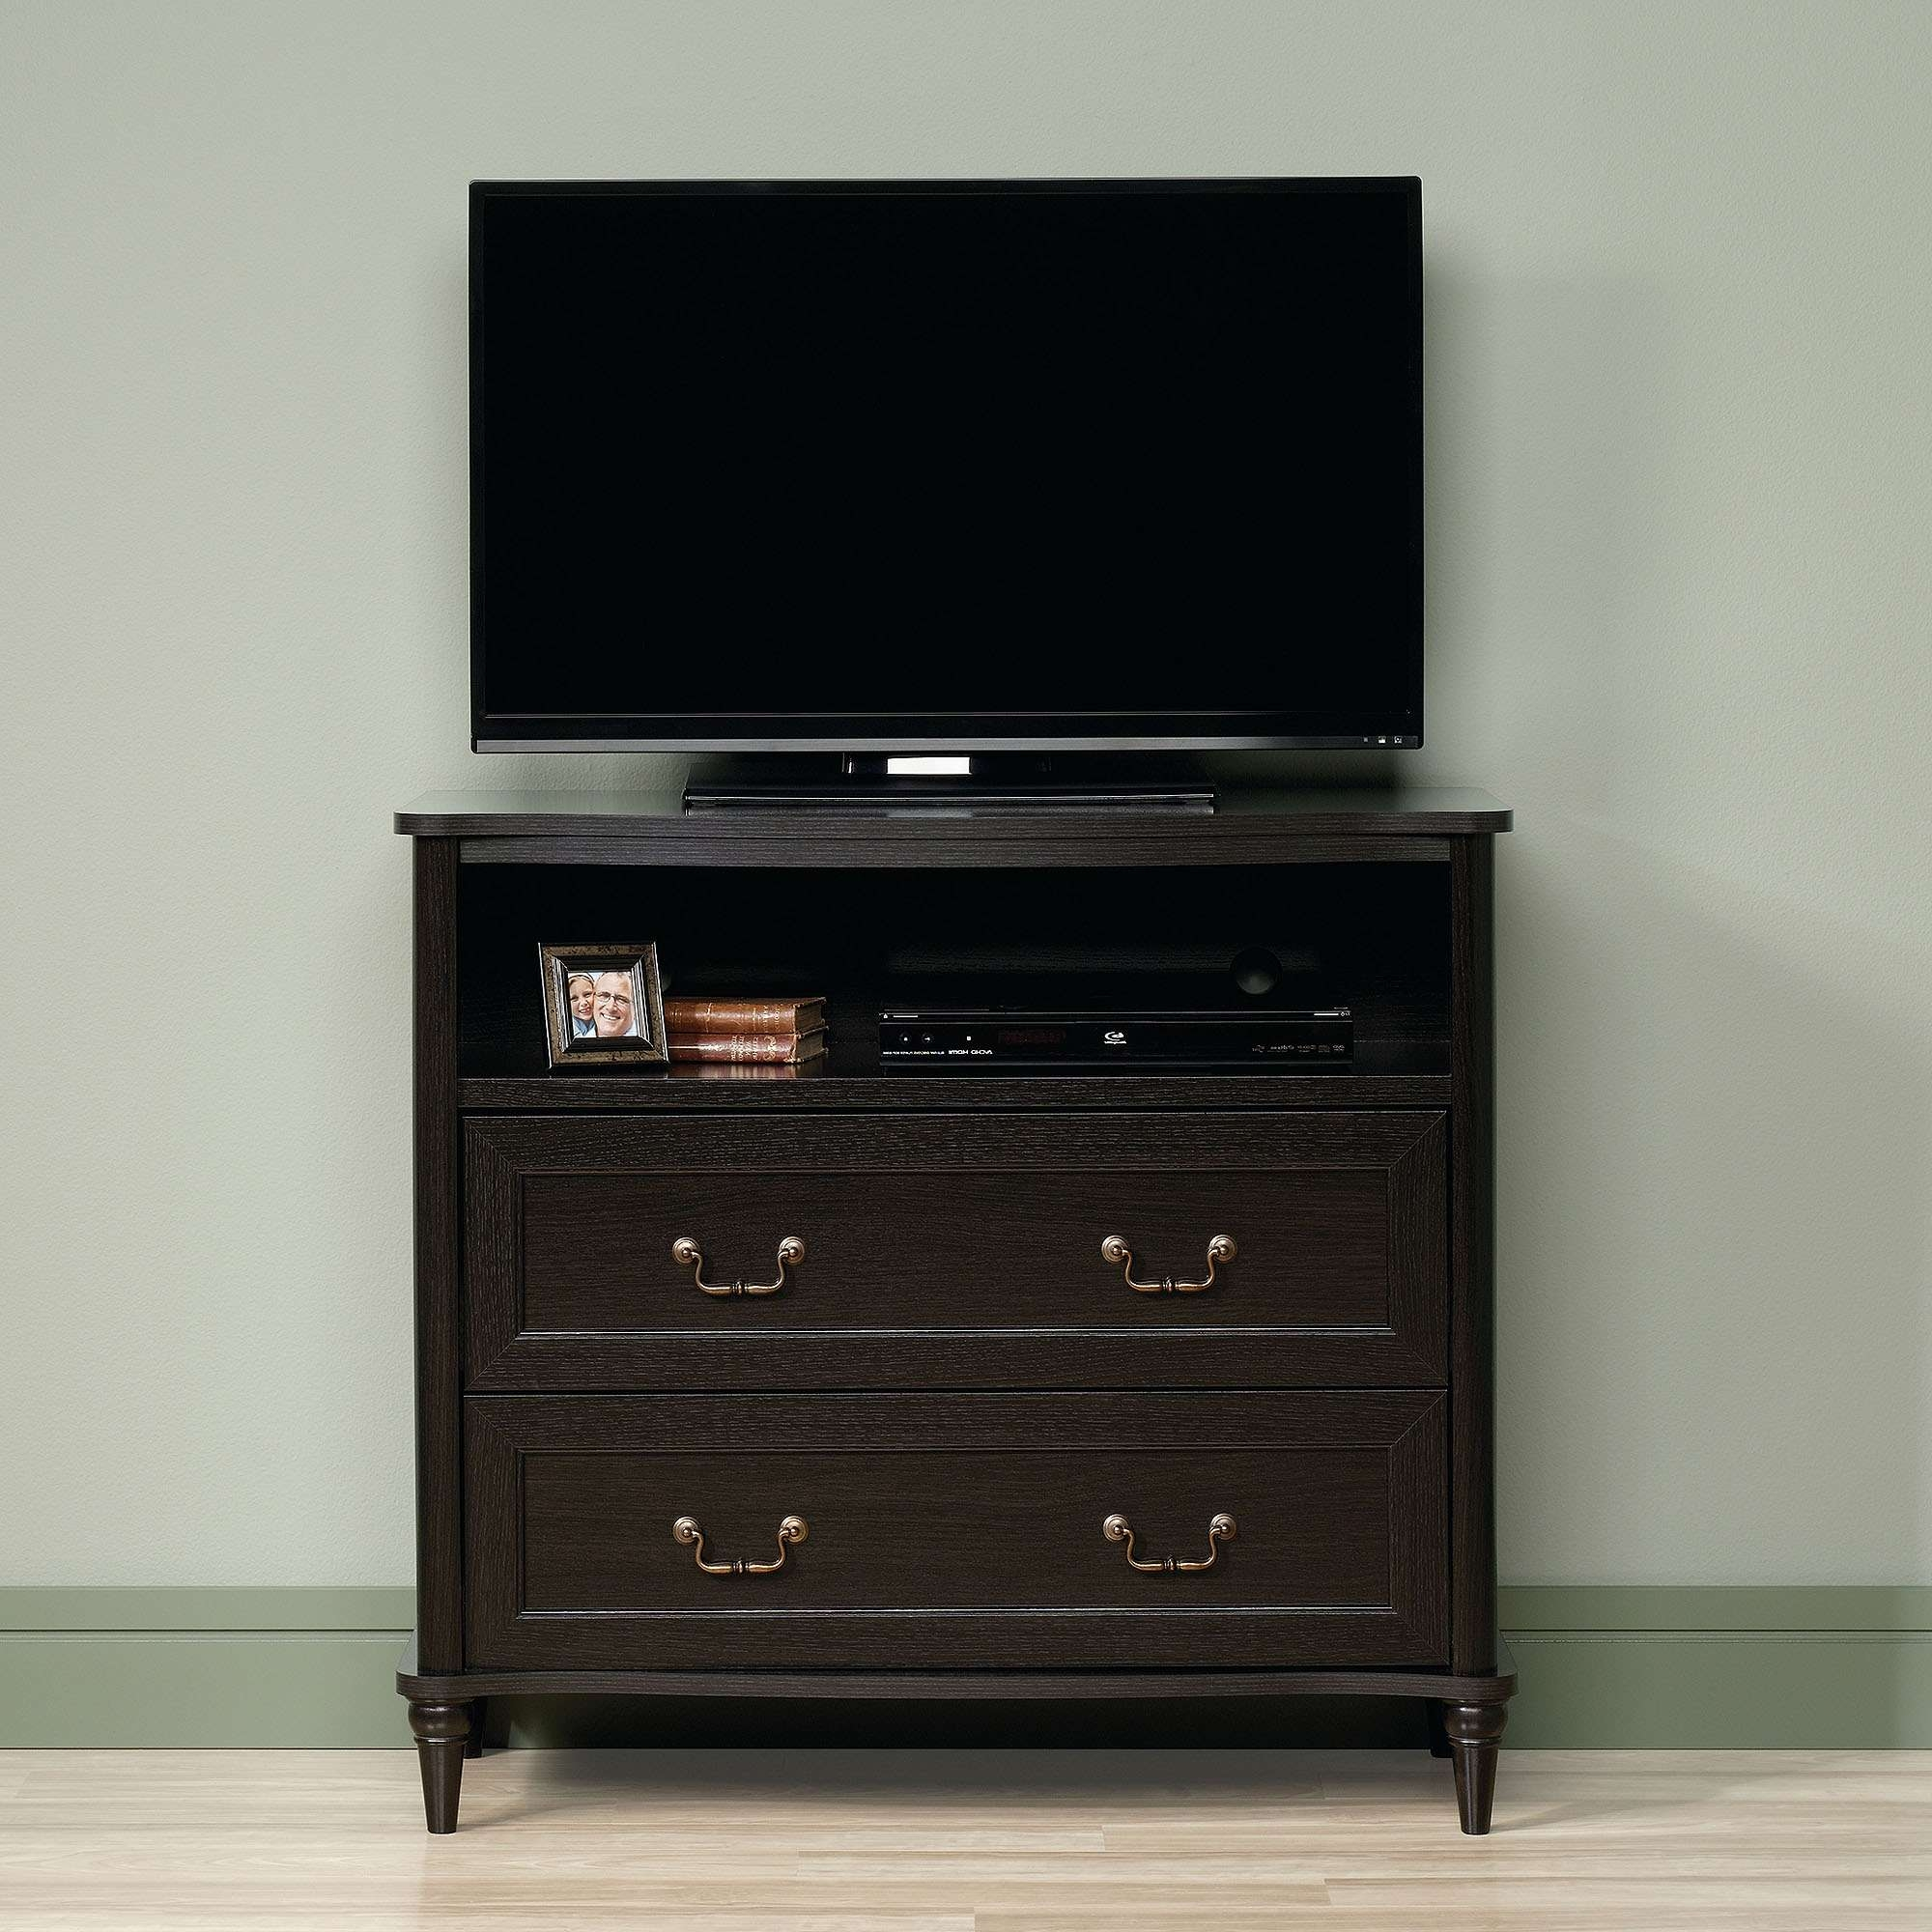 Sauder Wakefield Wind Oak Highboy Tv Stand For Tvs Up To 42 With Regard To Highboy Tv Stands (View 8 of 15)